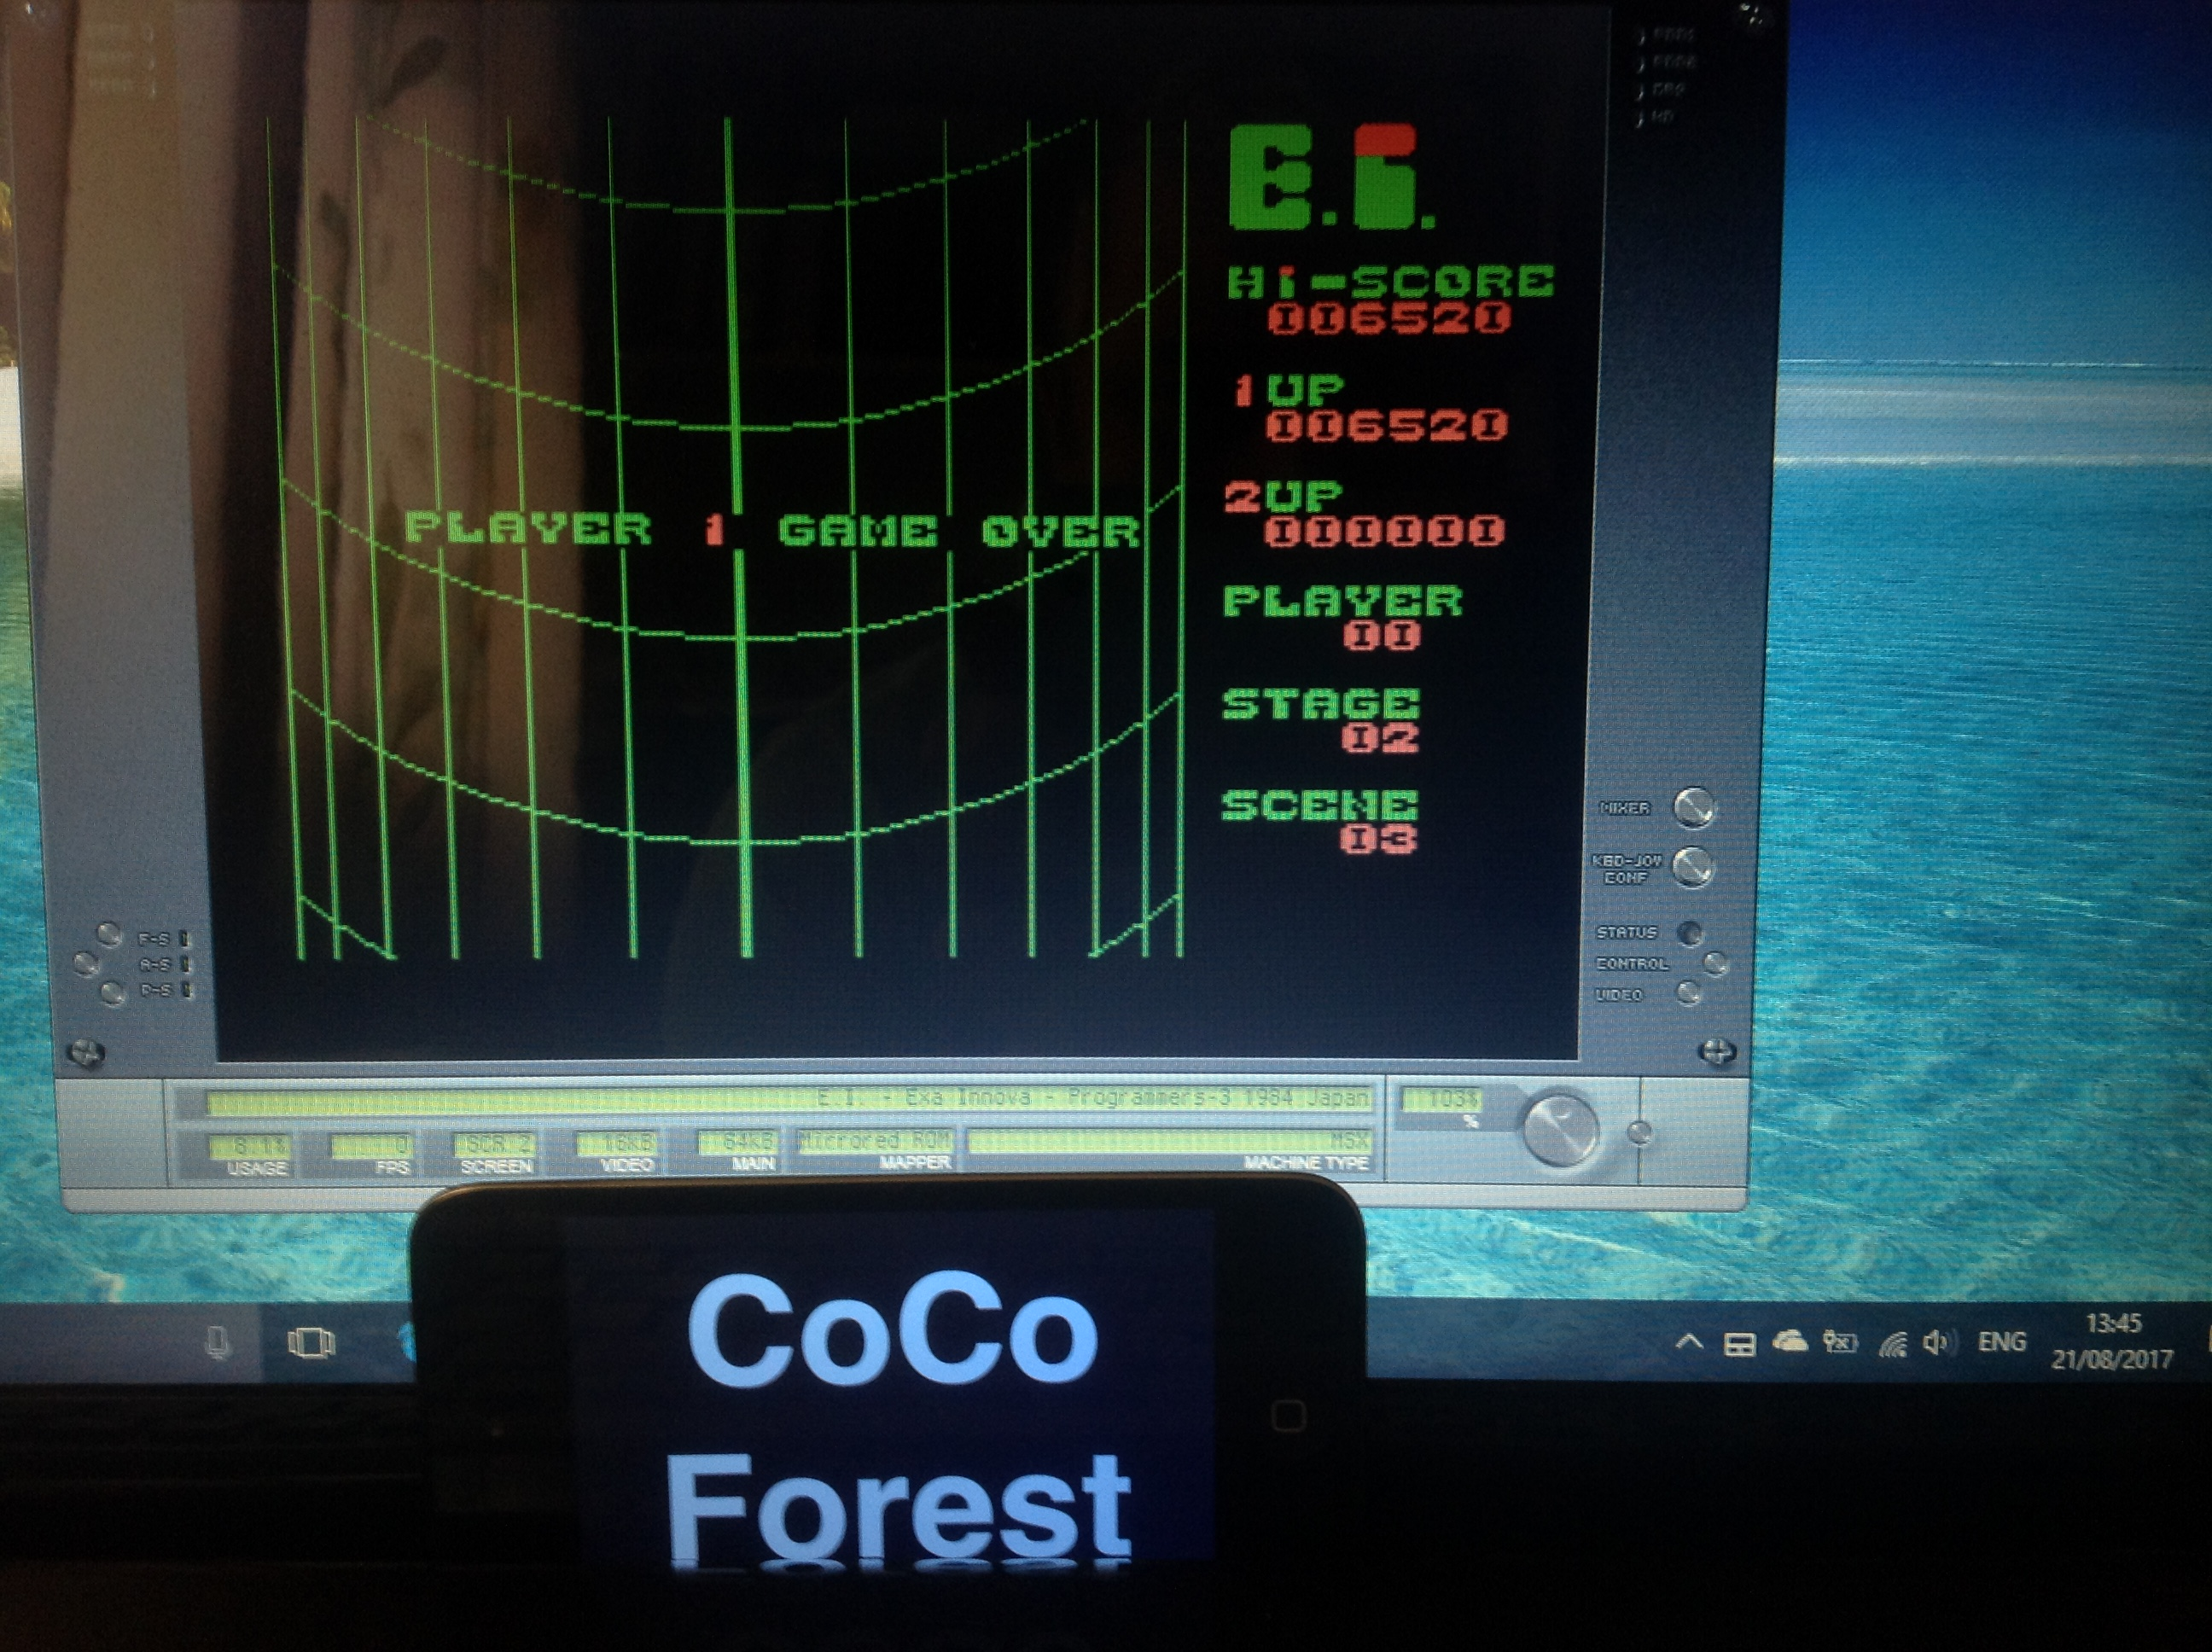 CoCoForest: E.I. Exa Innova (MSX Emulated) 6,520 points on 2017-08-21 07:46:36